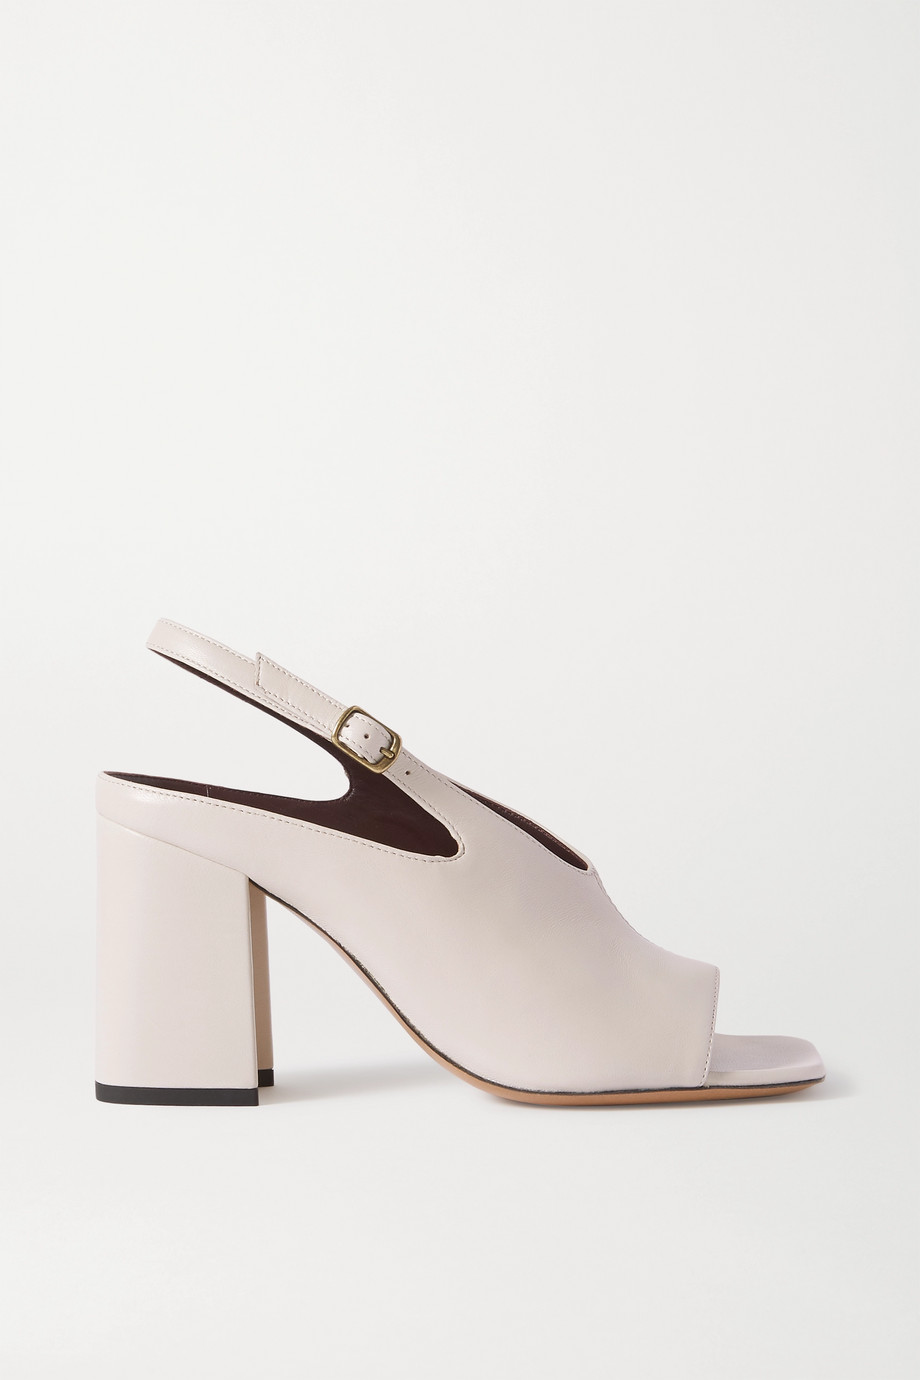 Dries Van Noten Leather slingback sandals